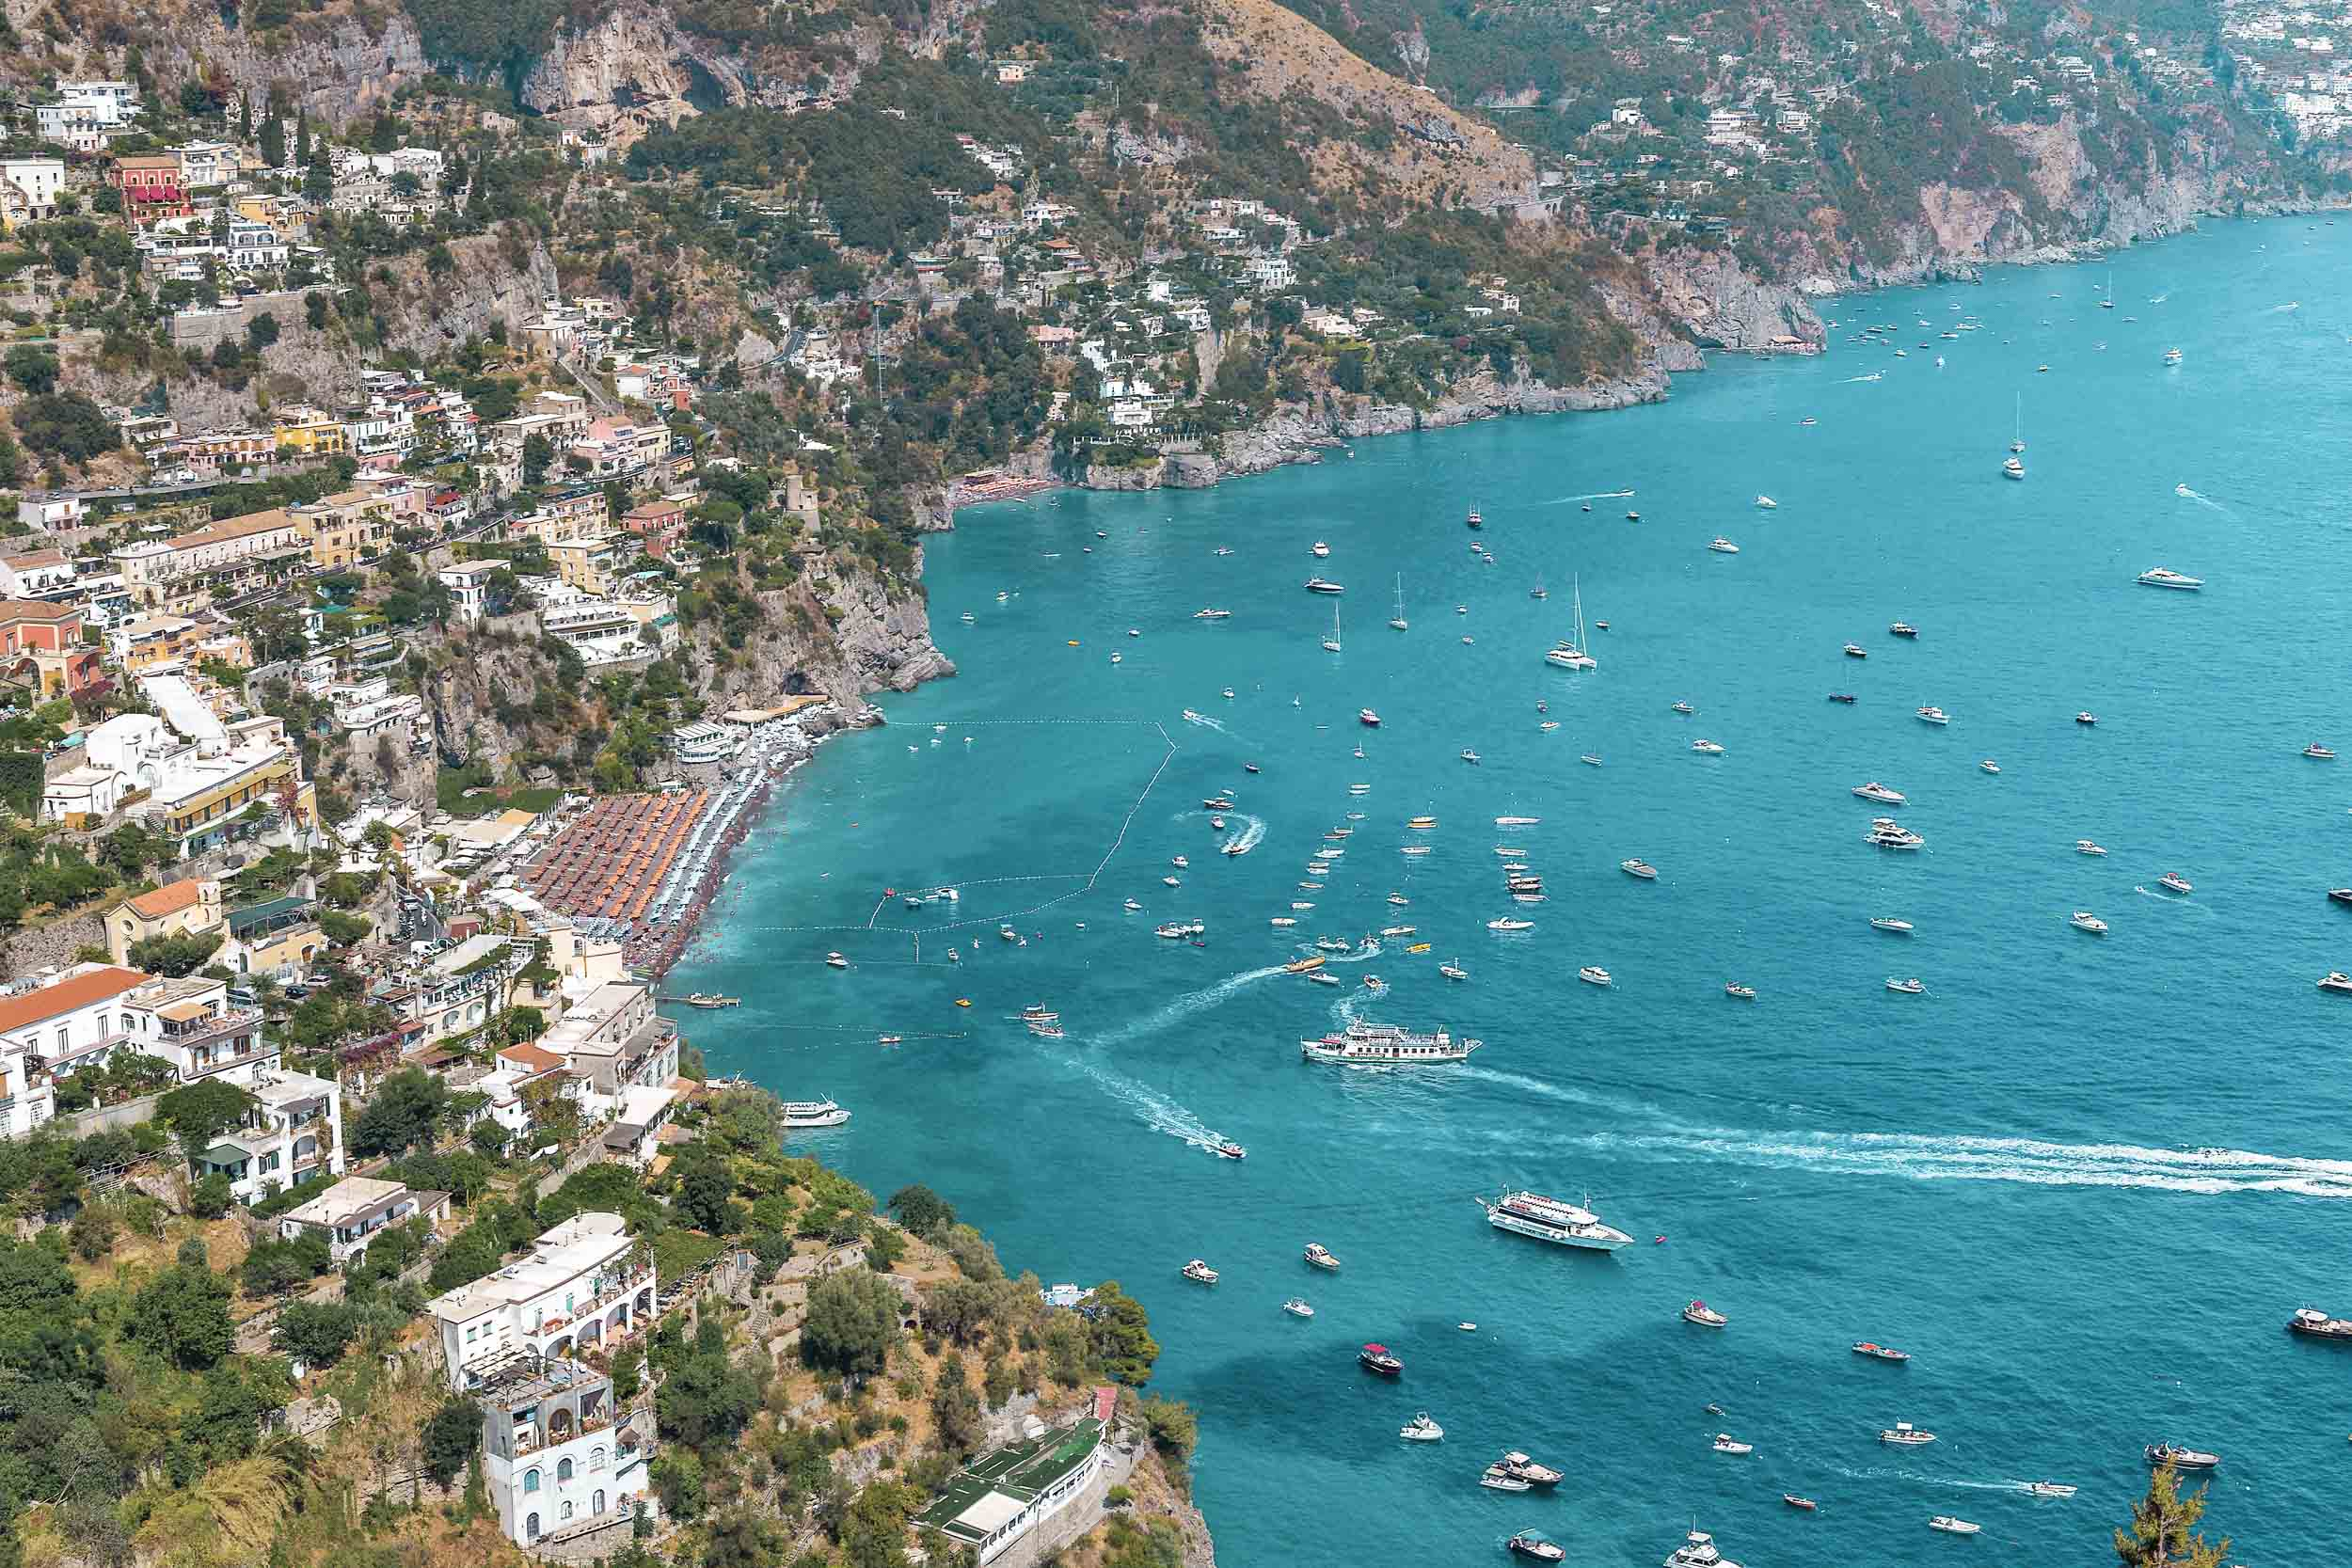 Everything you need to know about Positano, including where to stay, how to get there, what to do, and where to eat and drink